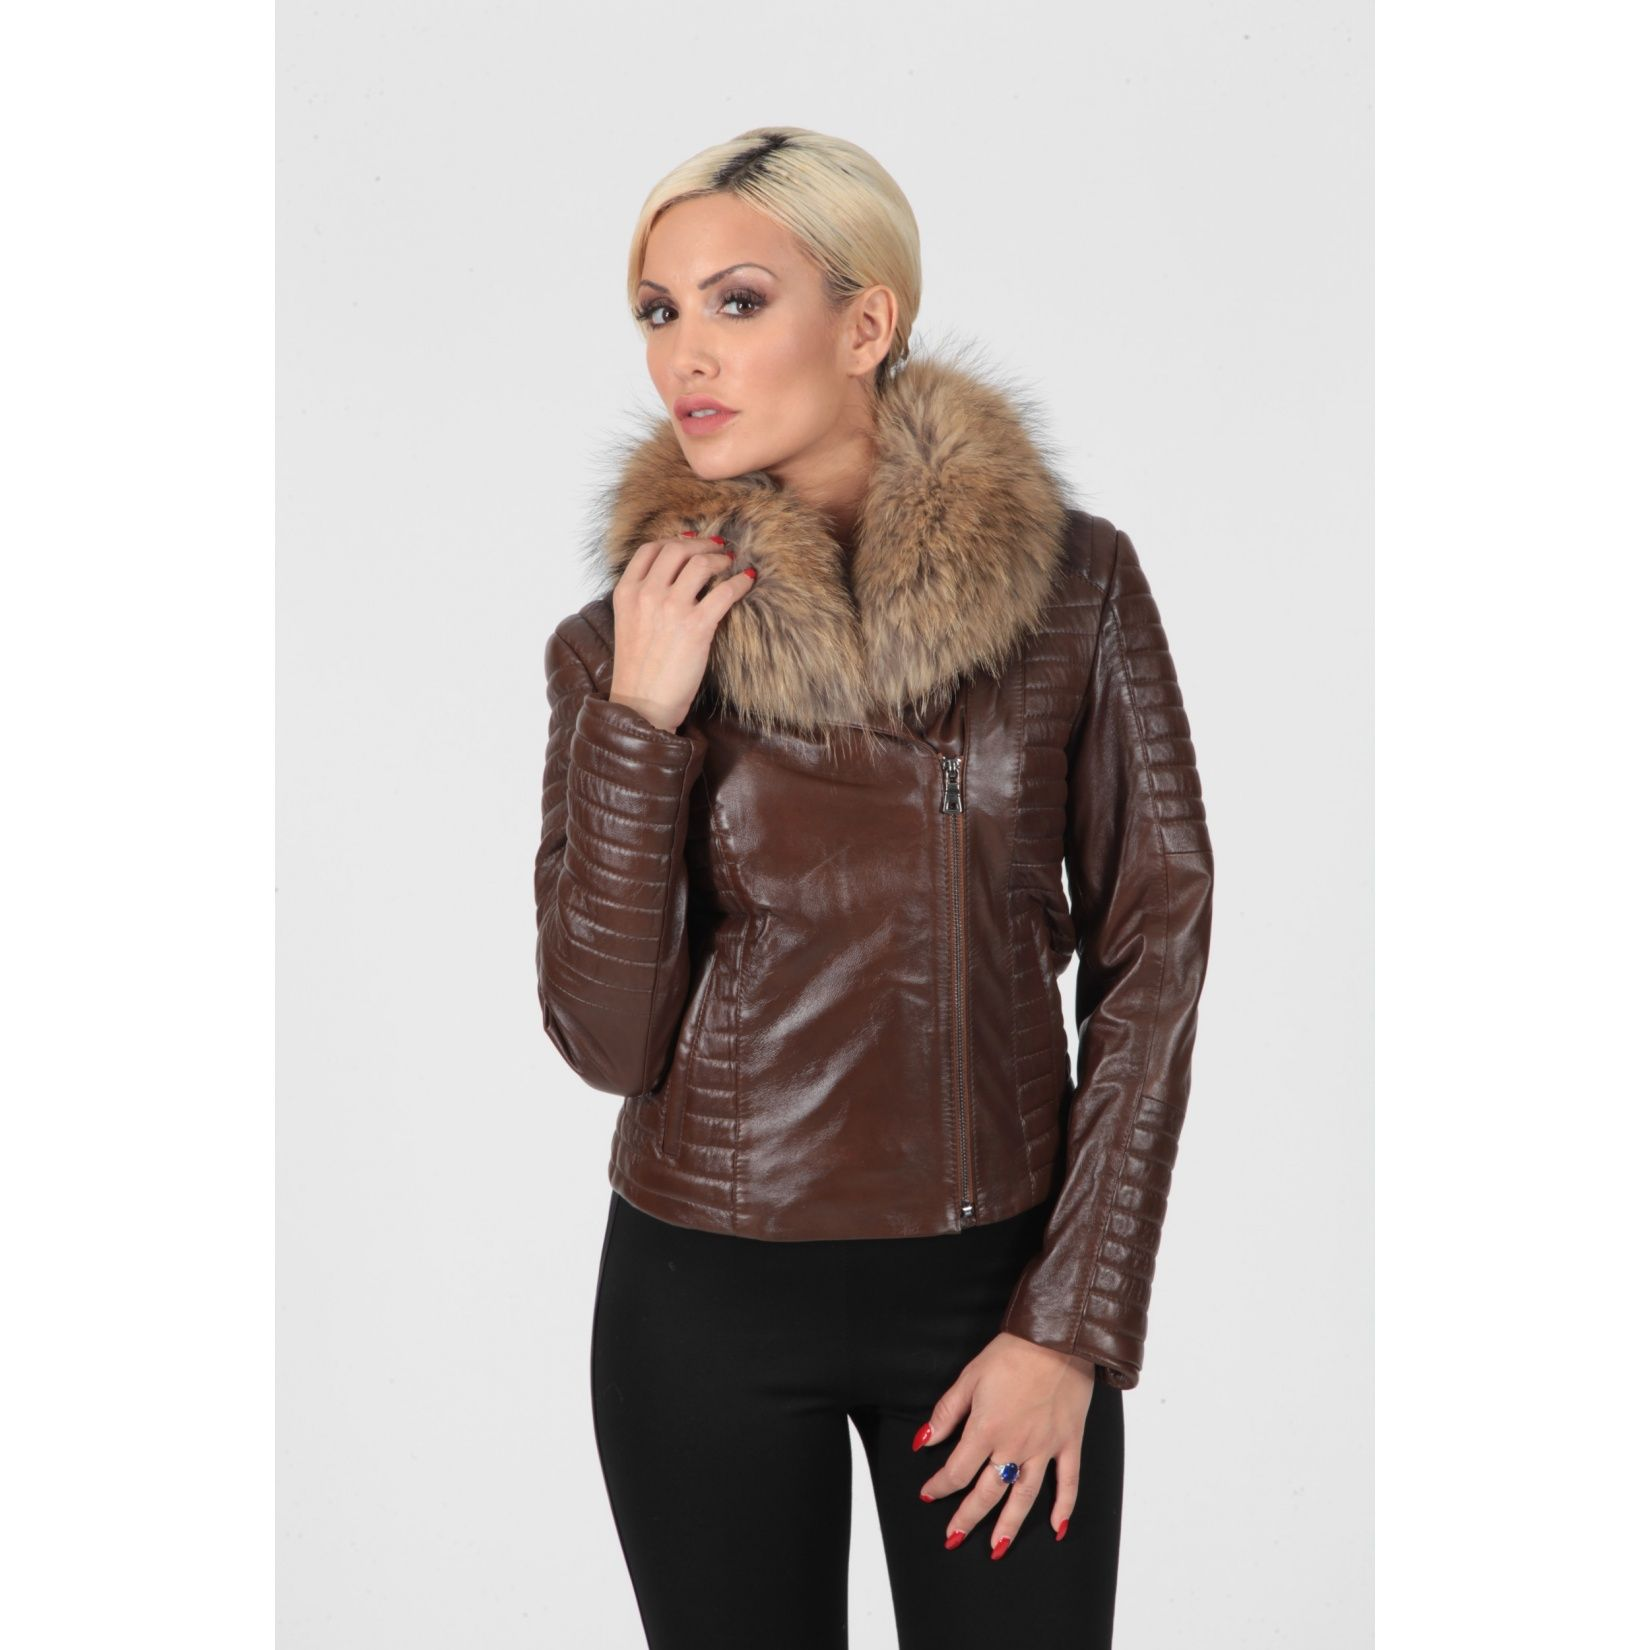 Rock the RED. CougarRedFriday Real leather jacket